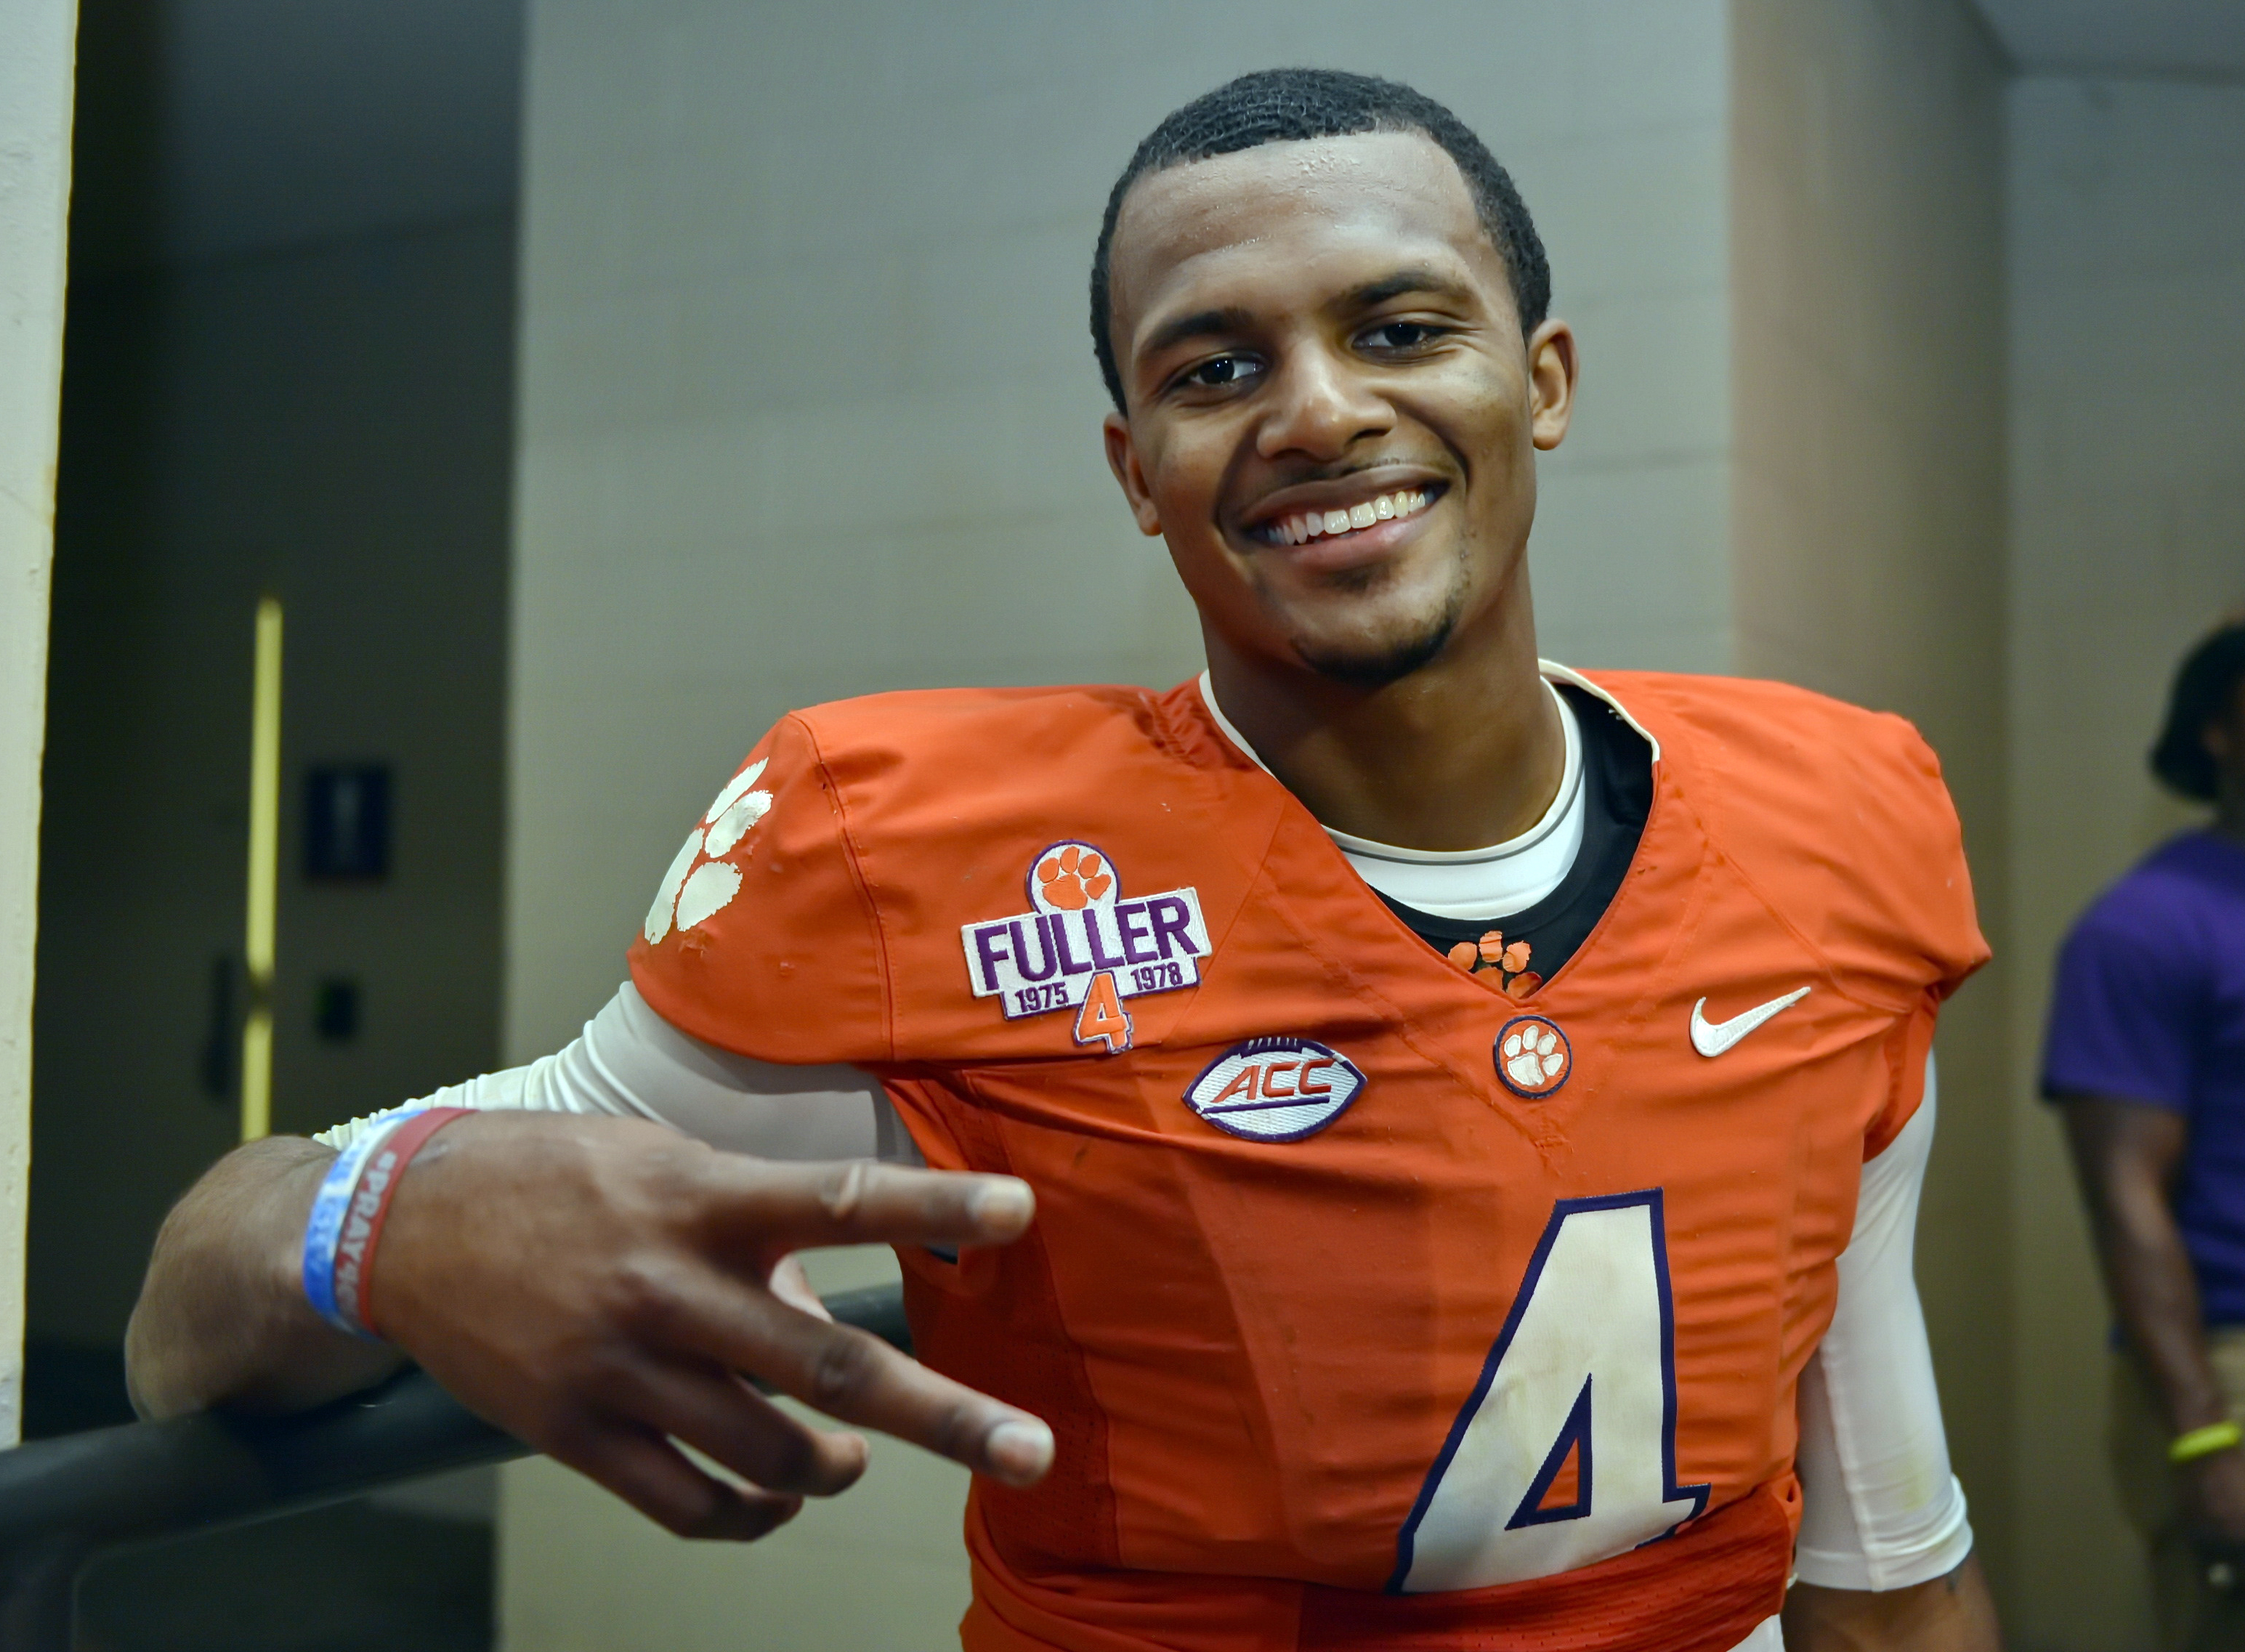 FILE - In this Nov. 7, 2015, file photo, Clemson quarterback Deshaun Watson poses for a photo after their 23-17 win over Florida State in an NCAA college football game, in Clemson, S.C. Watson says he's ready for the onslaught and plans to handle the glar